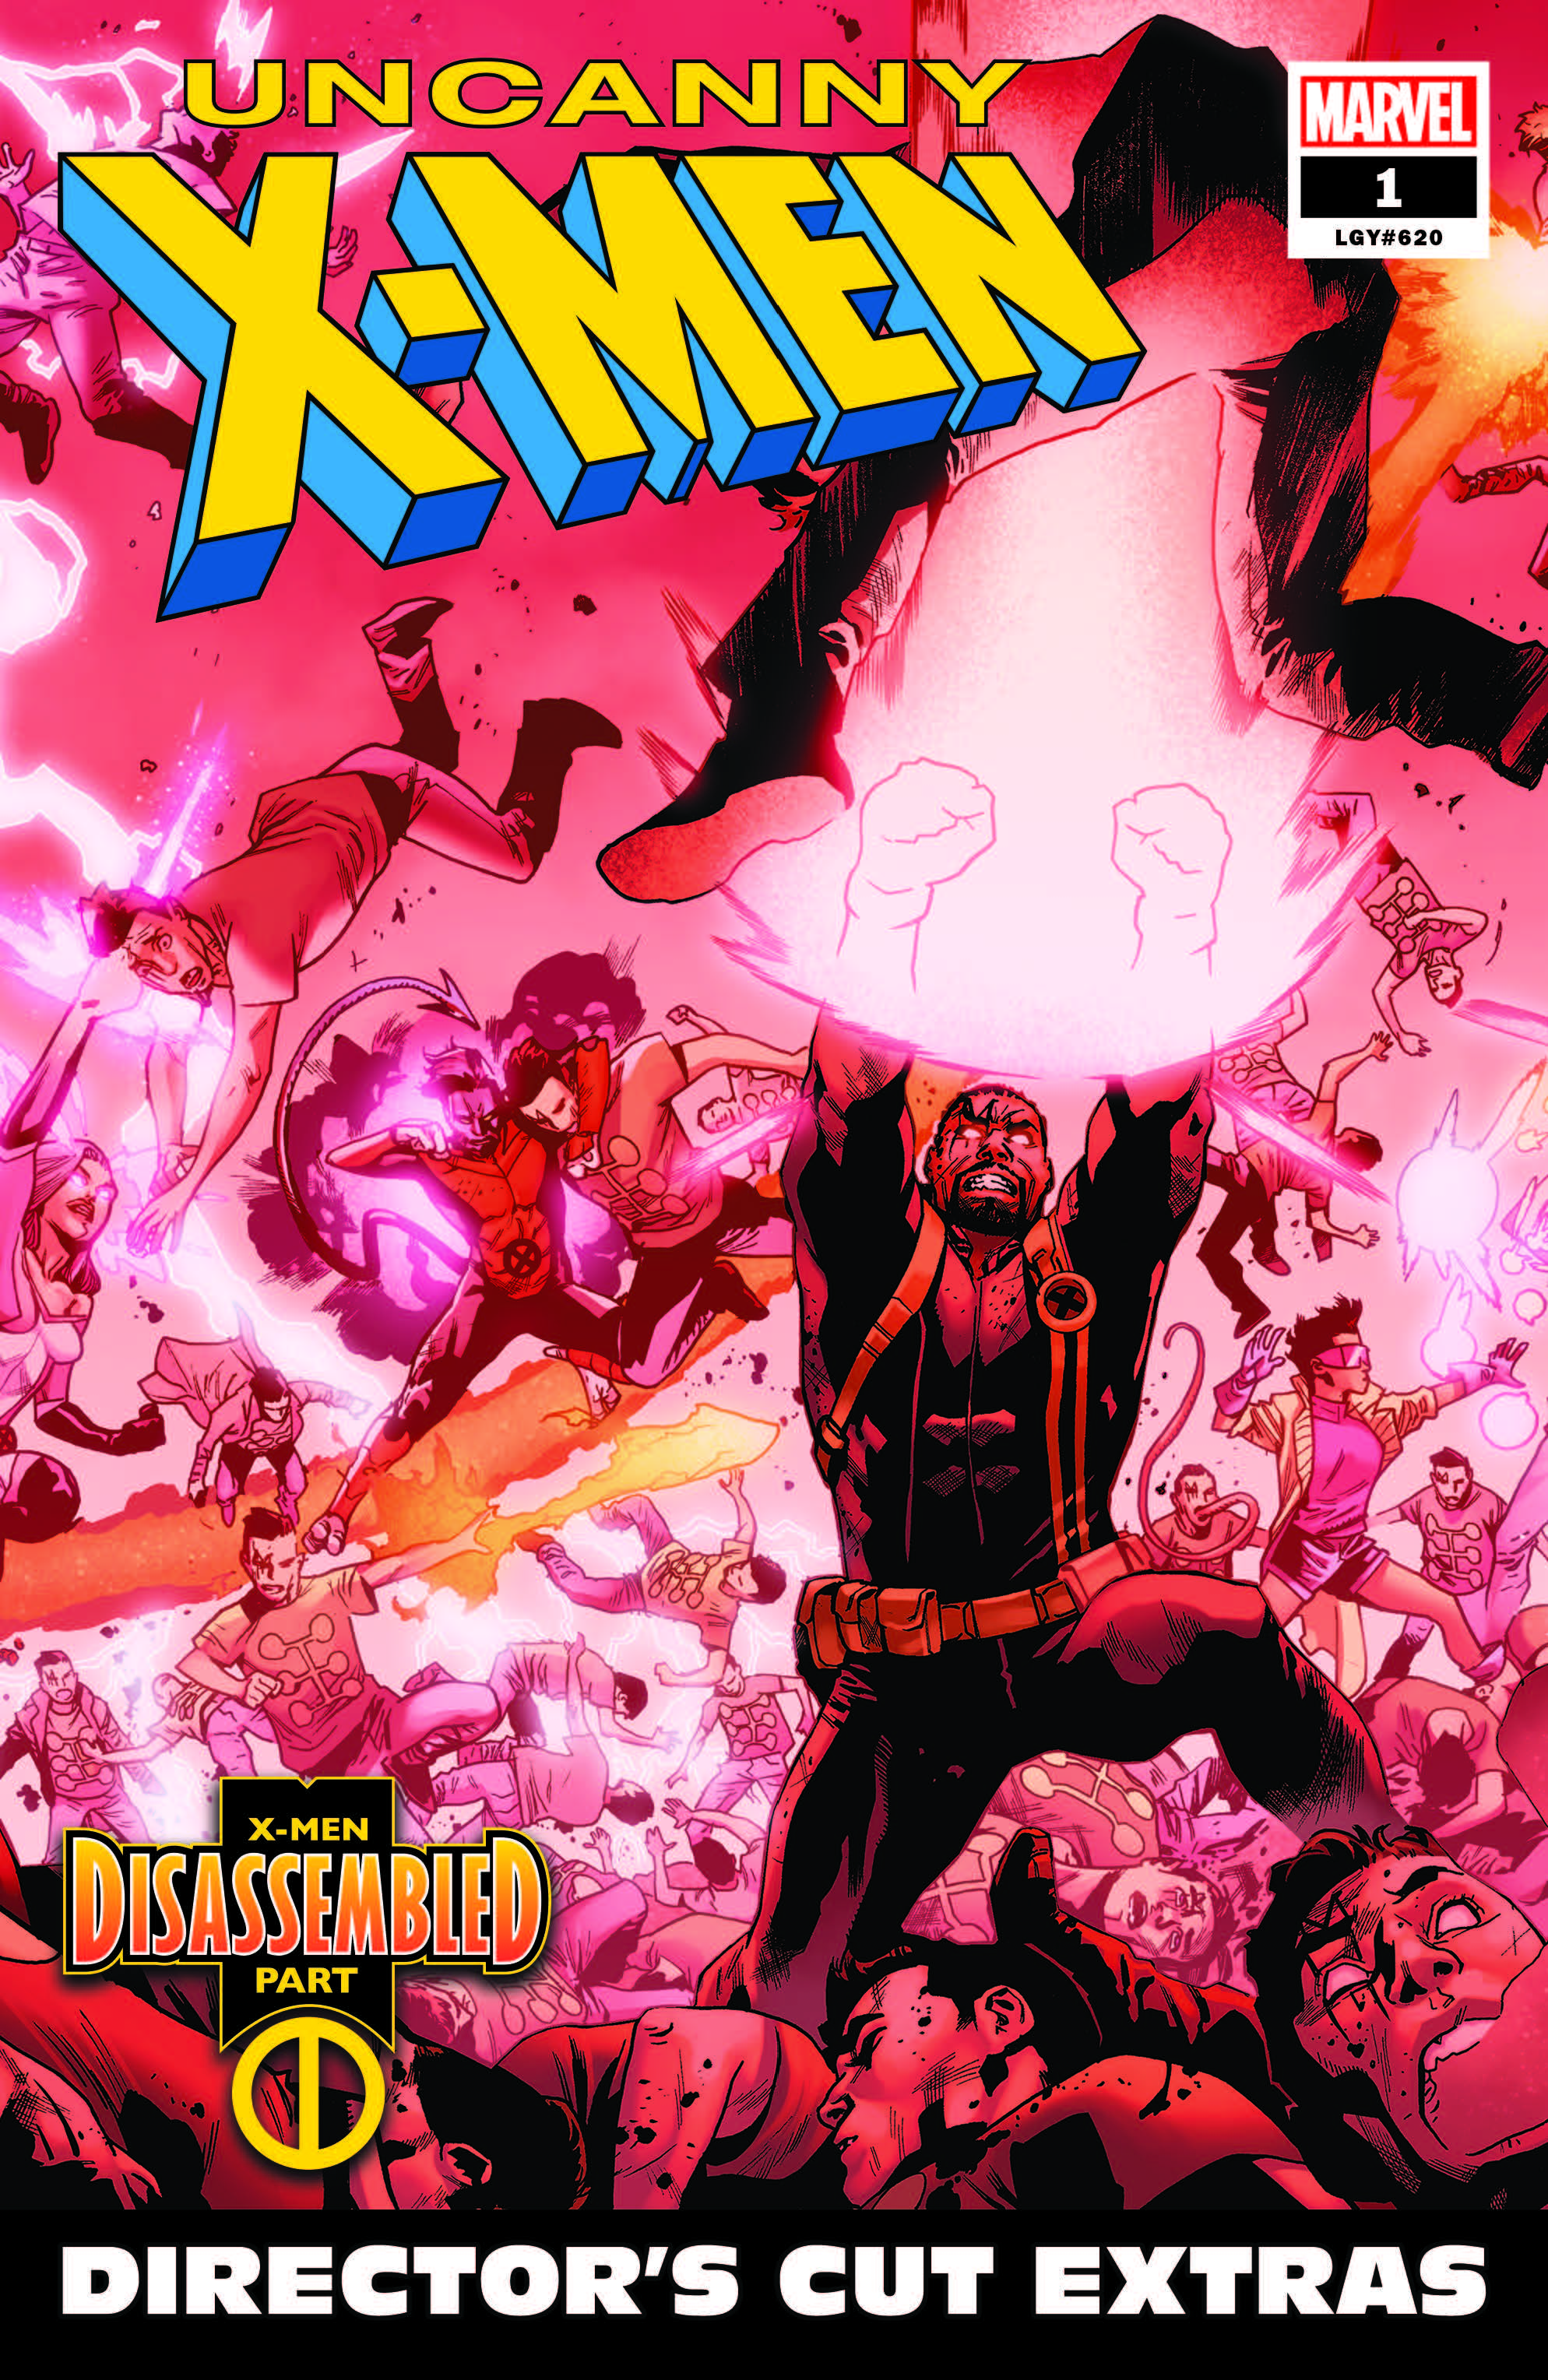 Uncanny X-Men #1 Gets a Digital Director's Cut